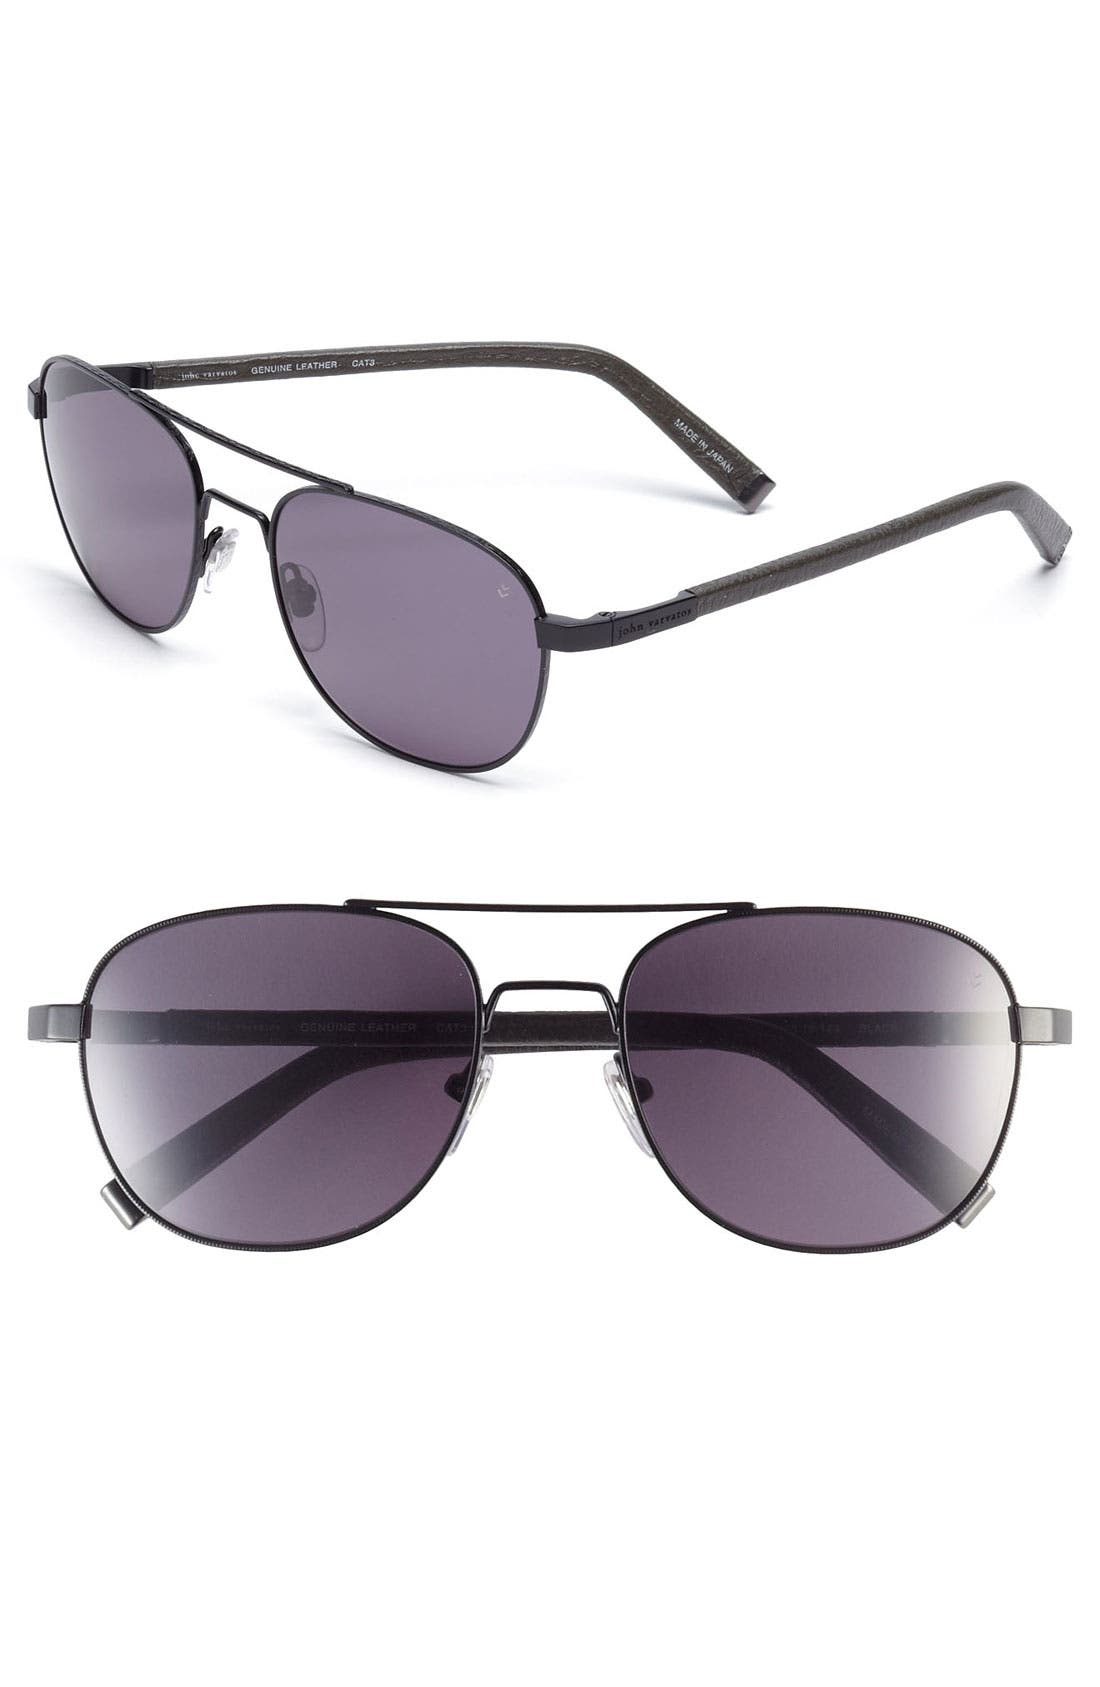 Alternate Image 1 Selected - John Varvatos Collection 55mm Sunglasses